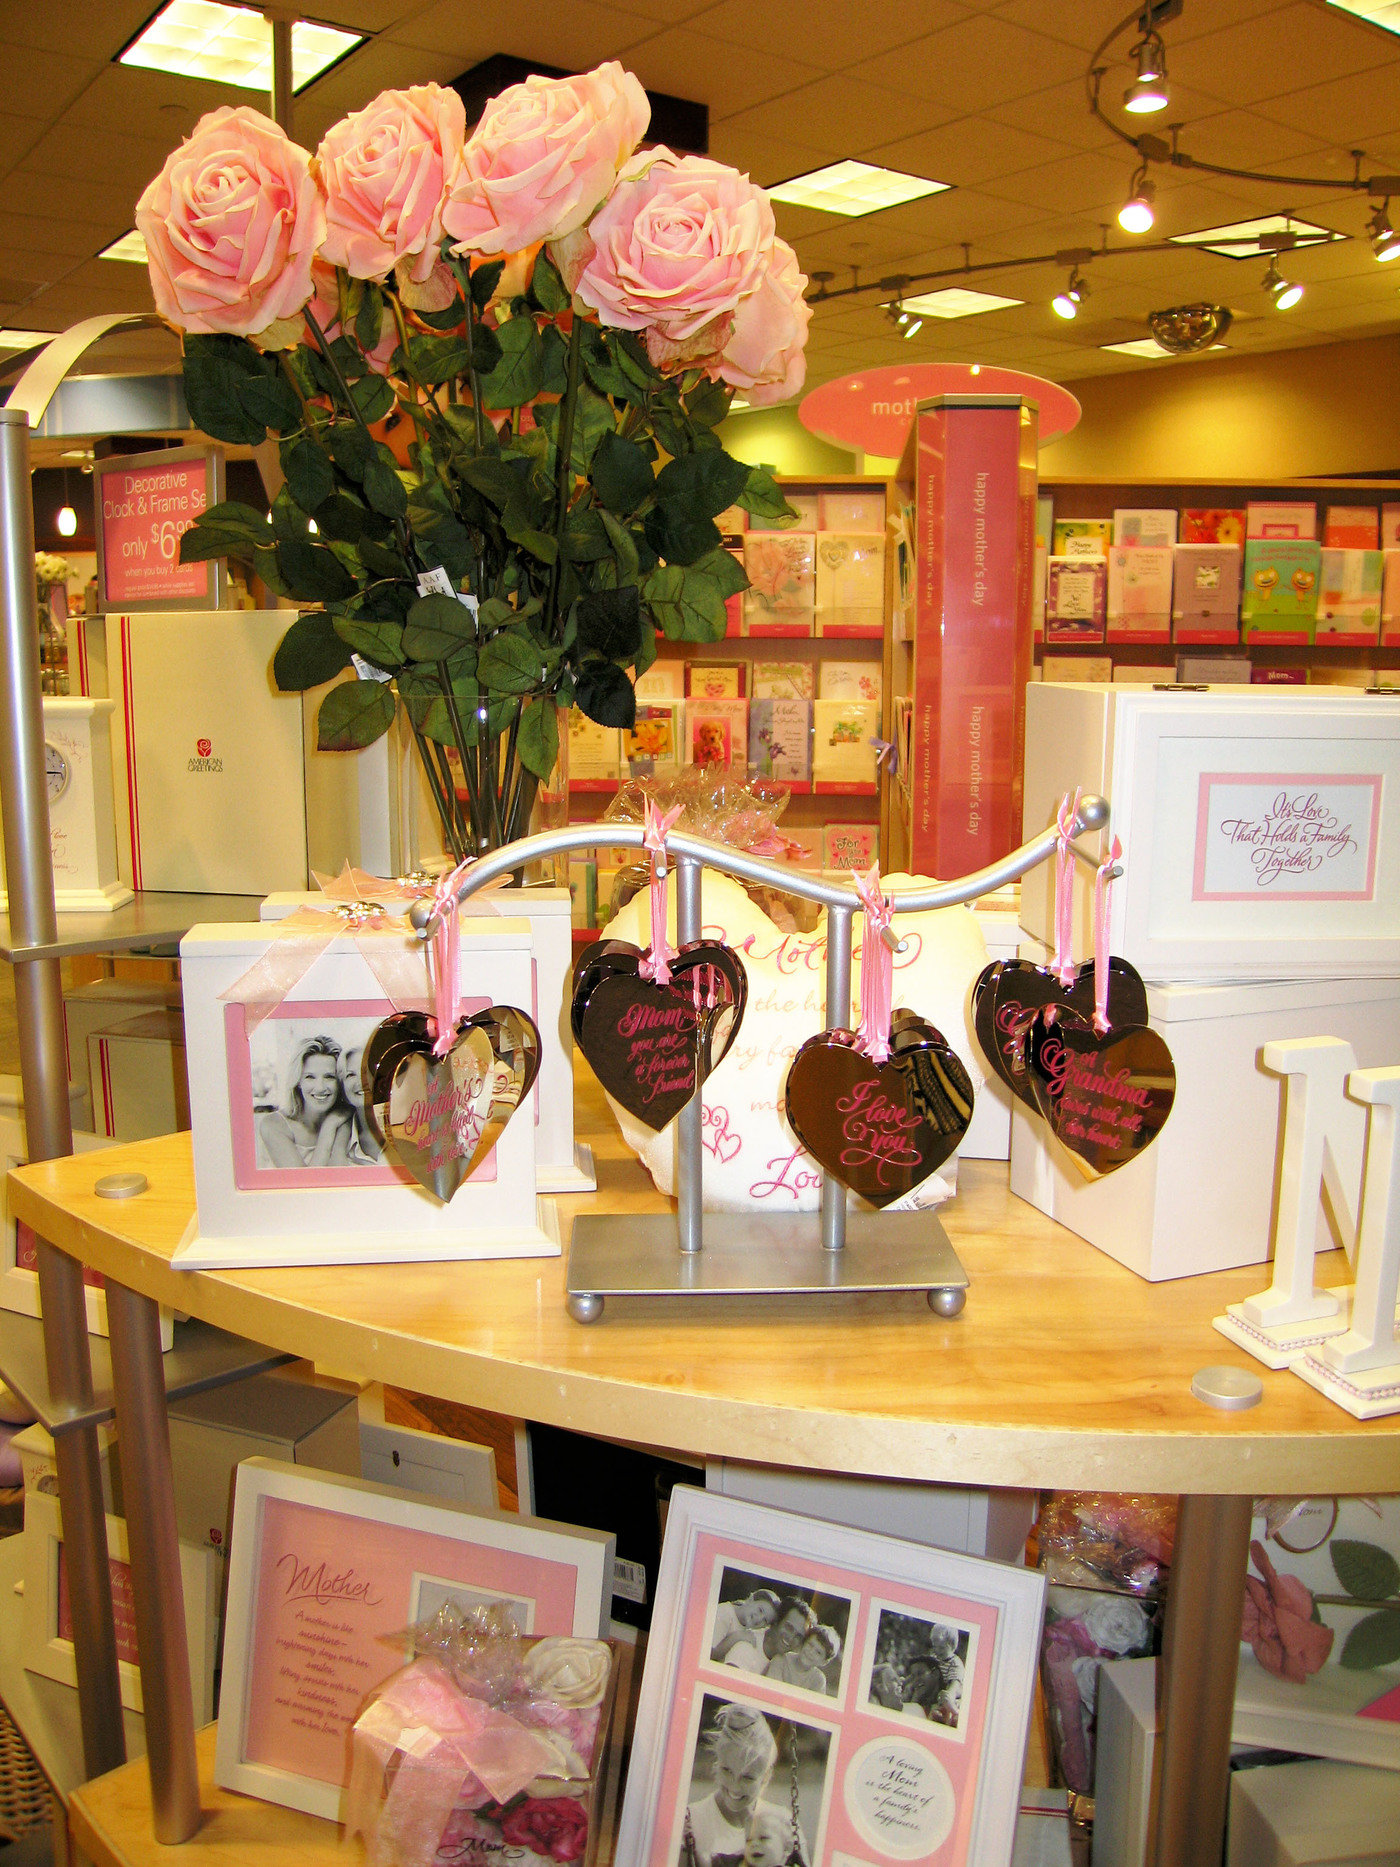 American greetings seasons celebration concept by elizabeth olson small ornament displayer displayer has greater attraction power than a more typical rack as product hangs freely fixture is integrated with gift product kristyandbryce Gallery